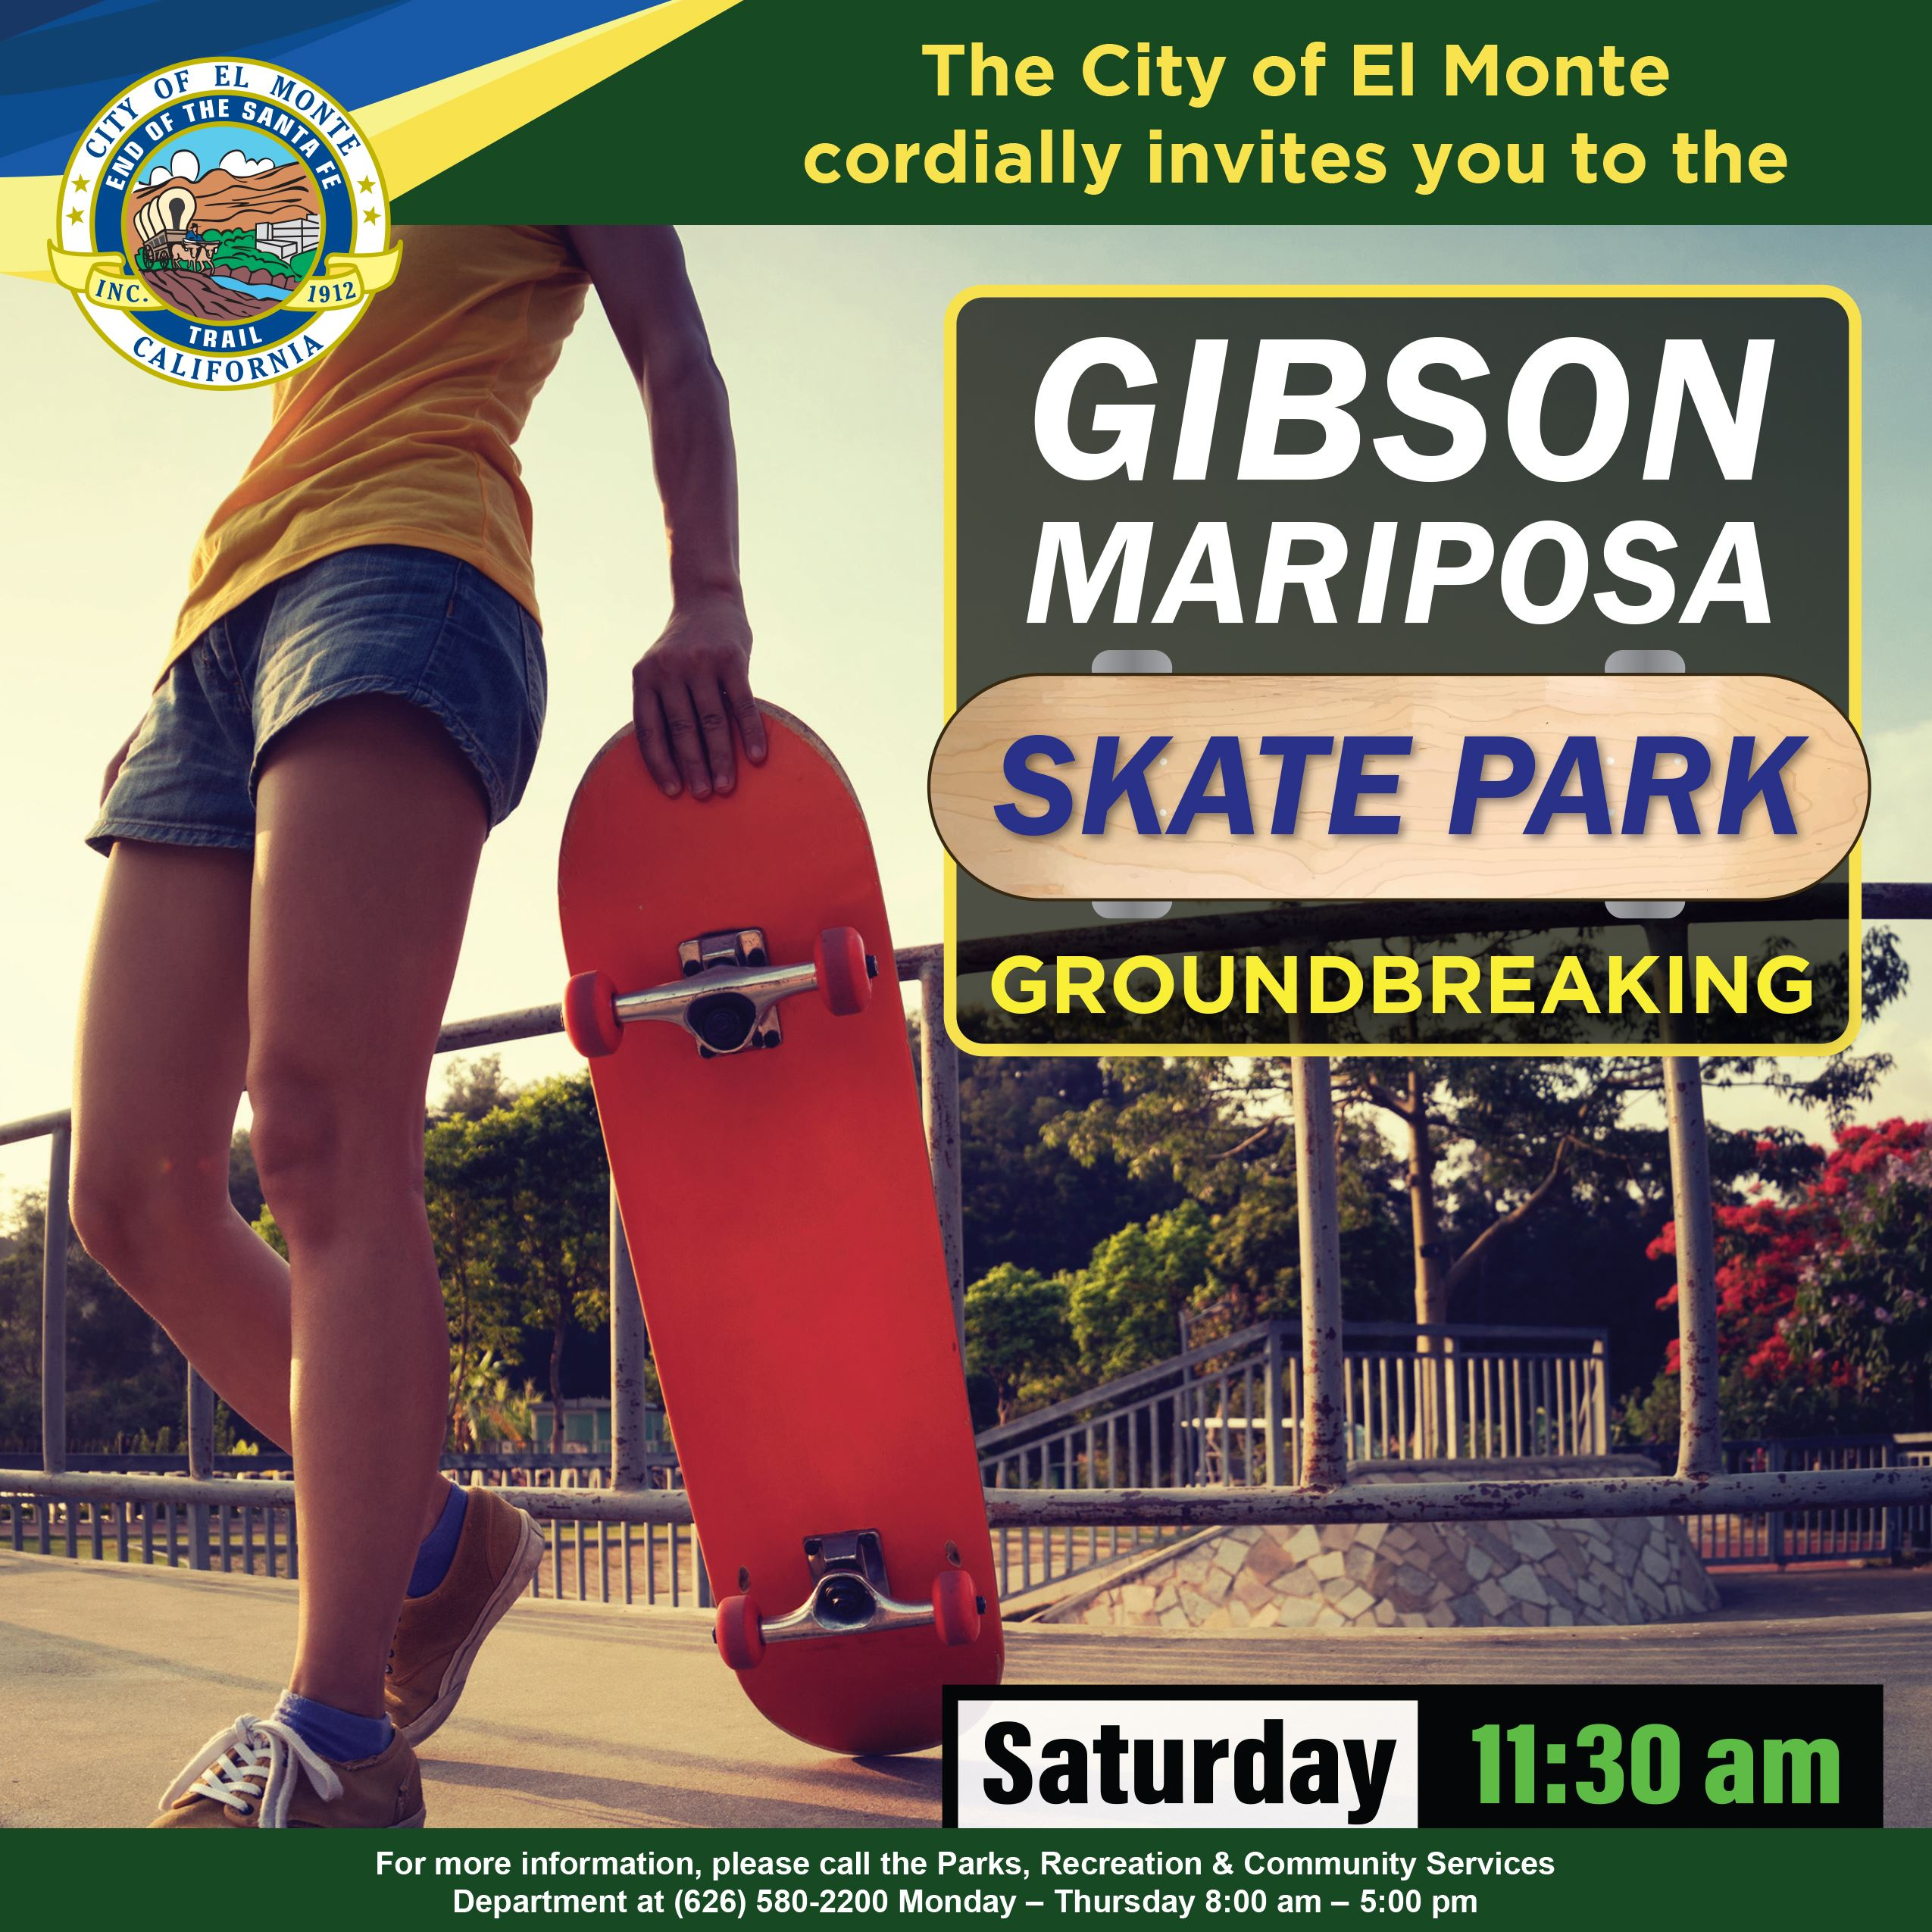 Flyer - Gibson Mariposa Skate Park Groundbreaking 02122020_edit 05 Web